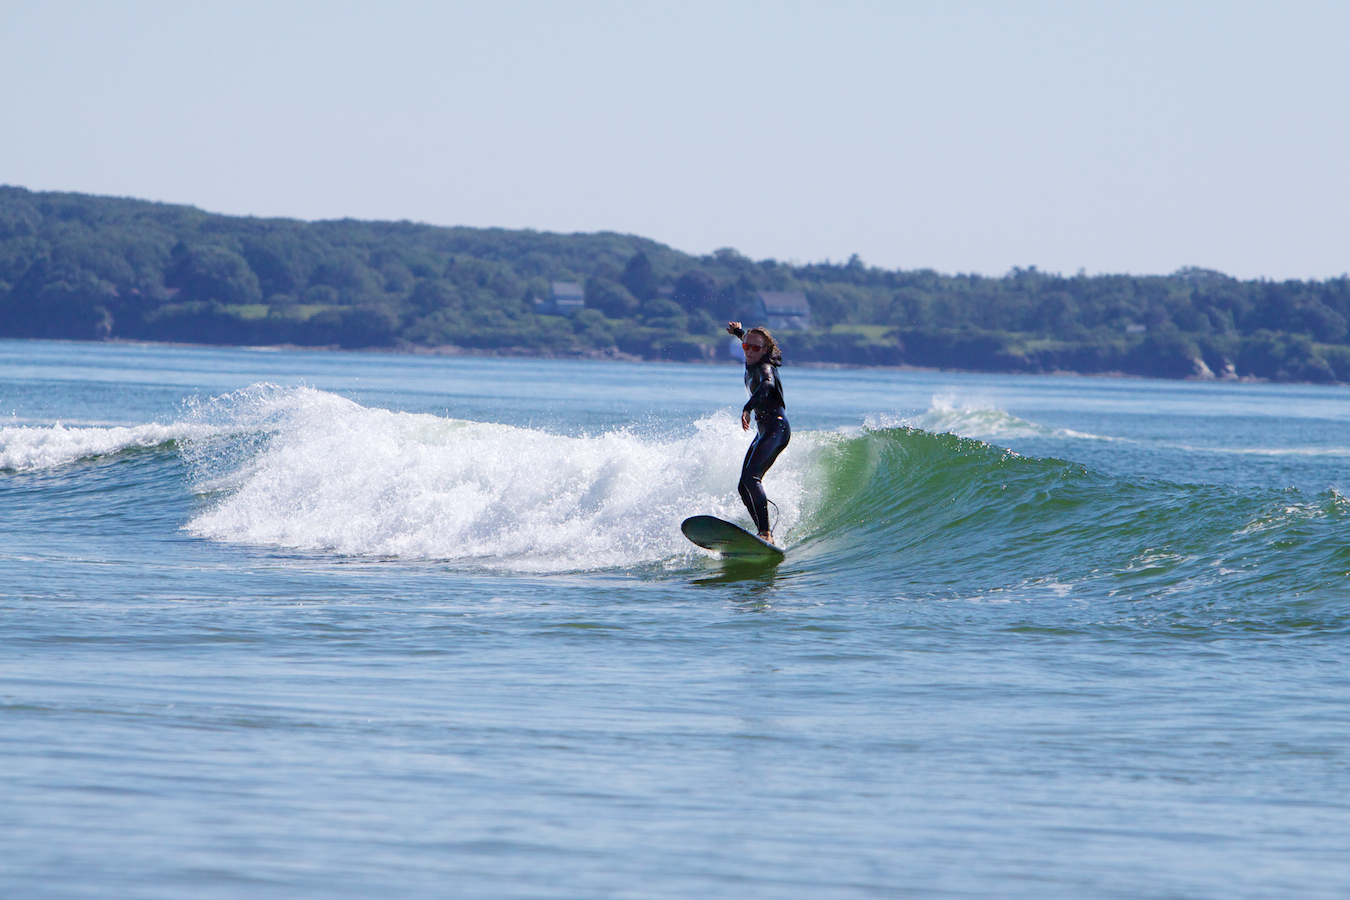 Located at Scarborough Beach, Surf Camp has access to the prime surf real estate in Southern Maine